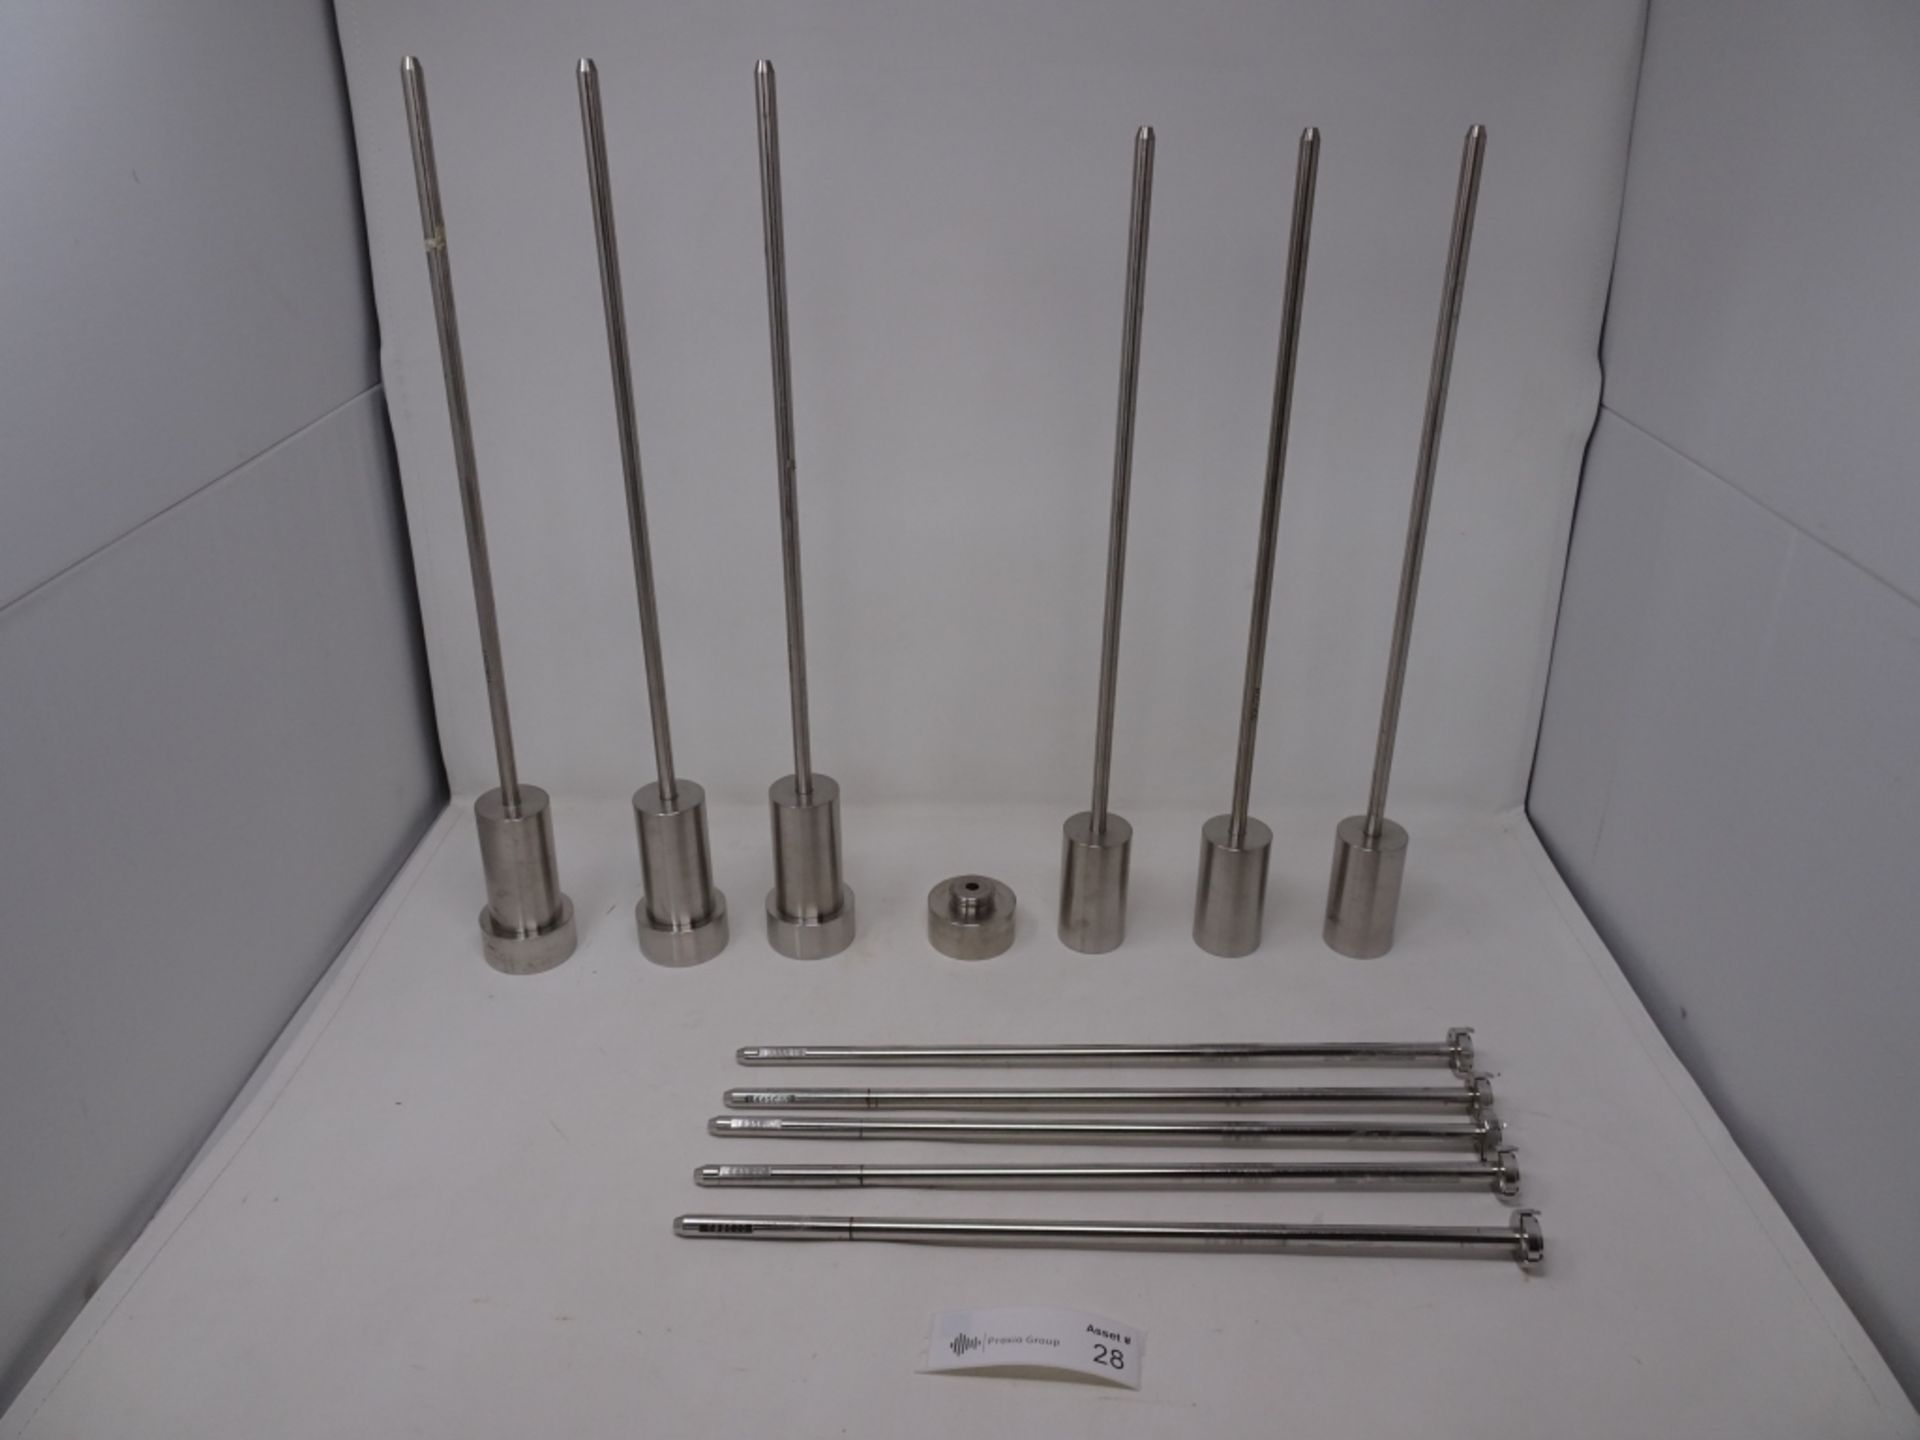 Lot of Distek Mixing Rods With (4) Stainless Steel Tablet Dissolution Cylinders With Caps